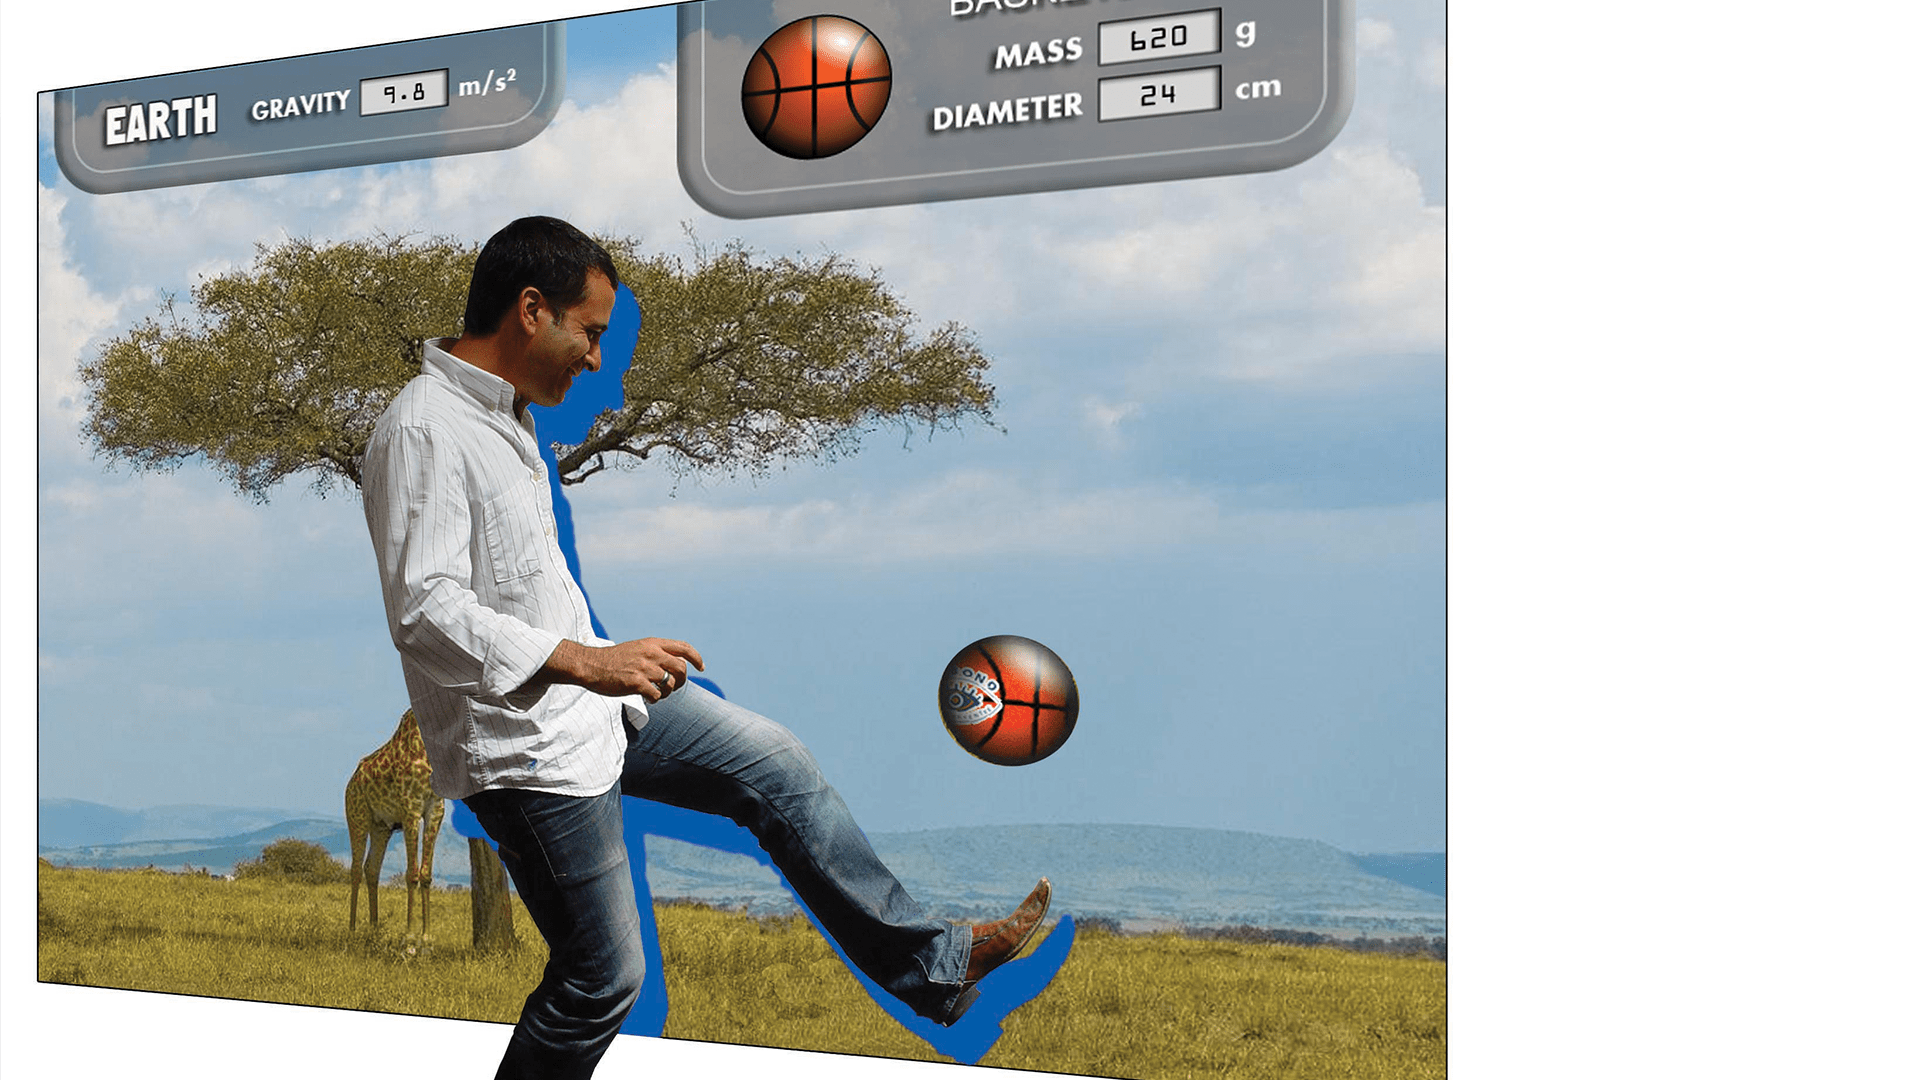 The Discovery Centre Gravity Game was created by Formula D interactive